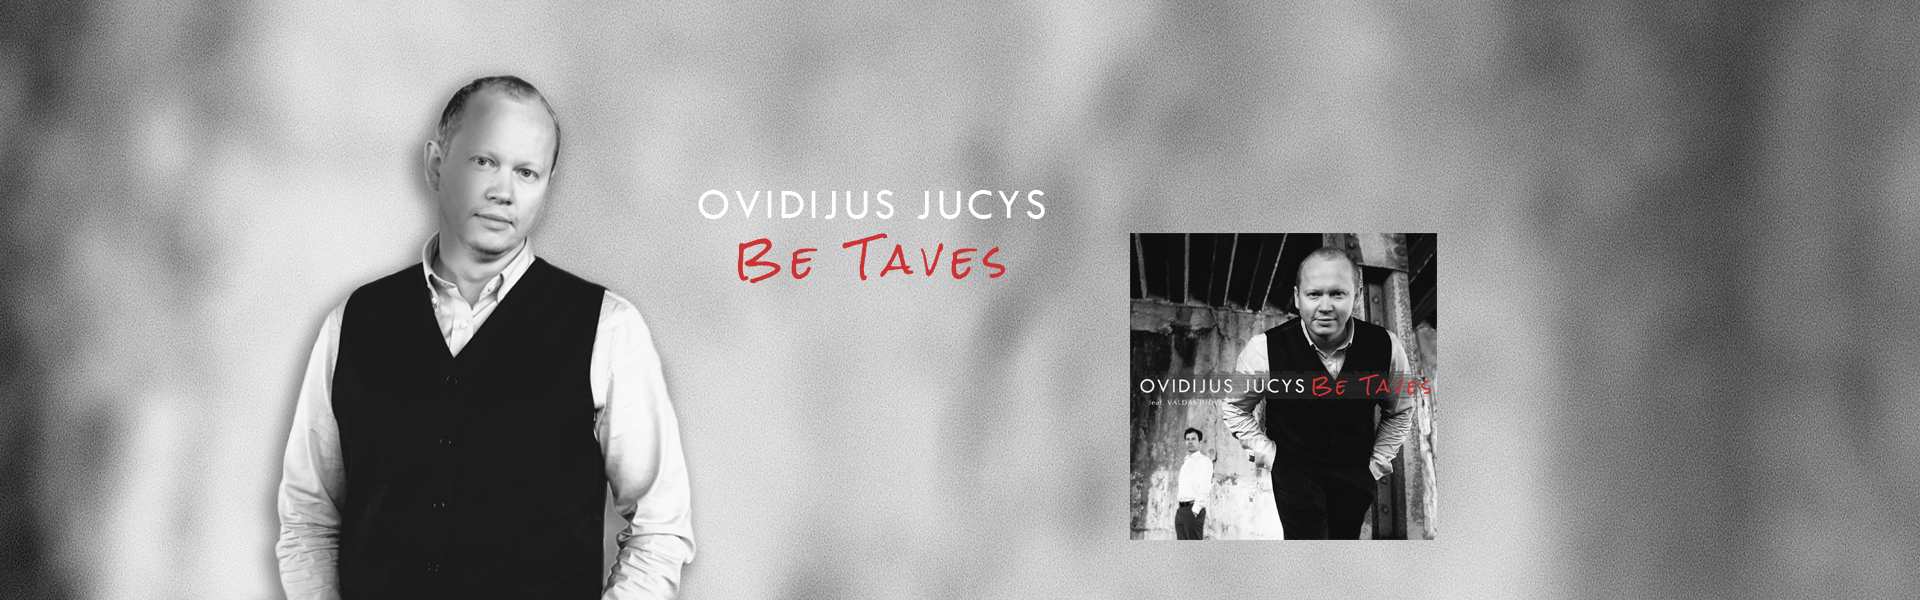 ovidijus jucys be taves